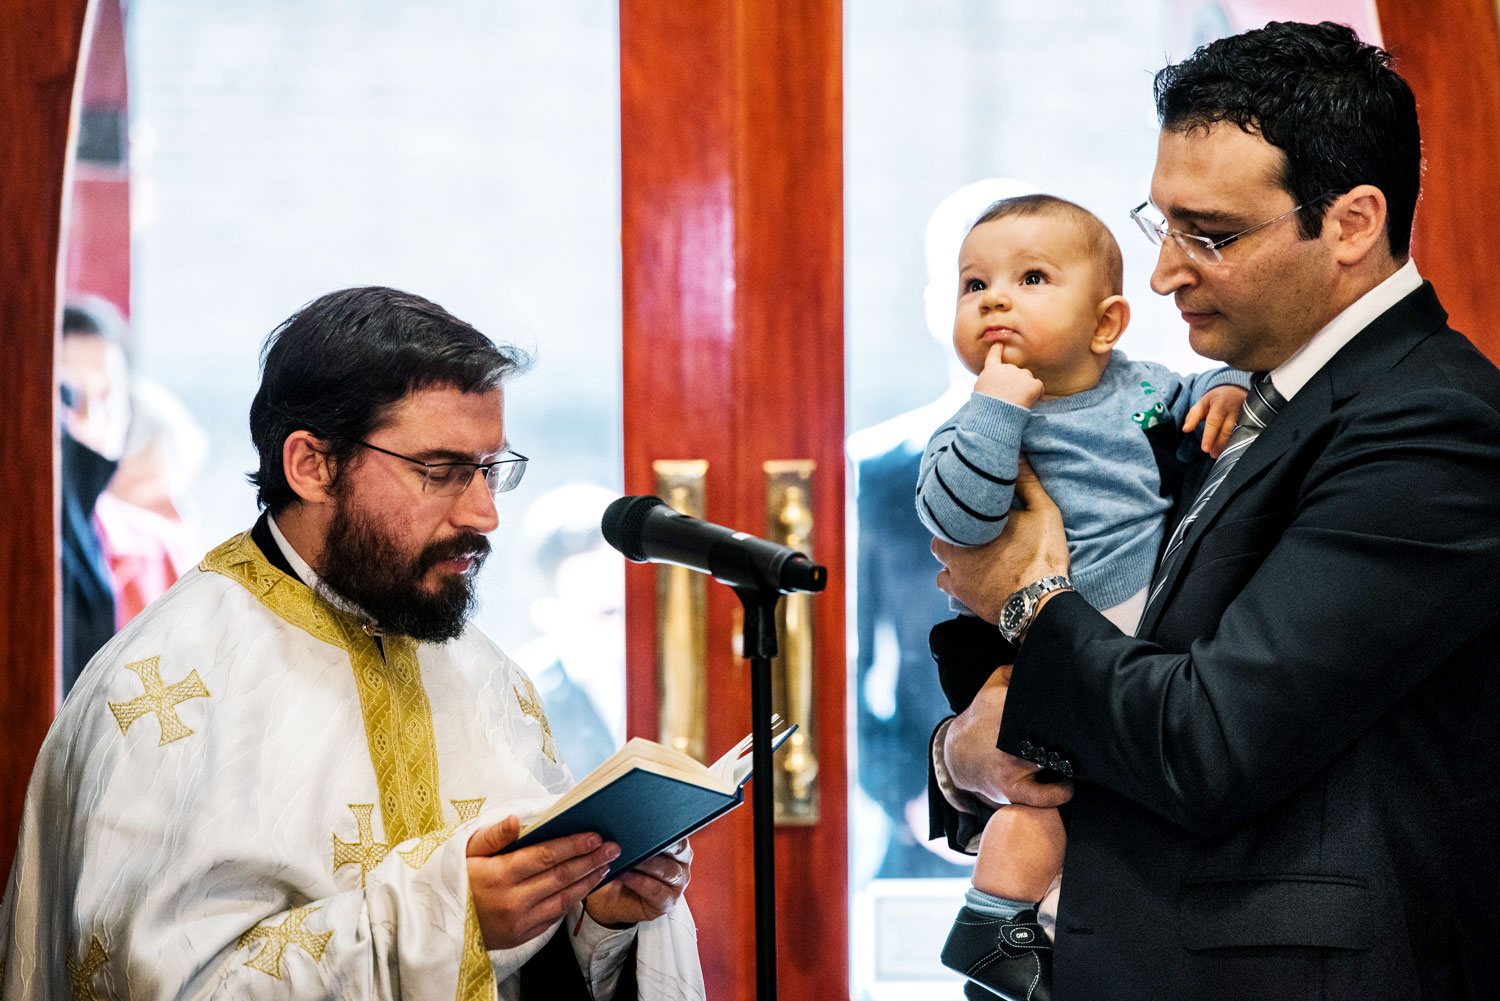 Christening-Photographer-Sydney-K7.jpg